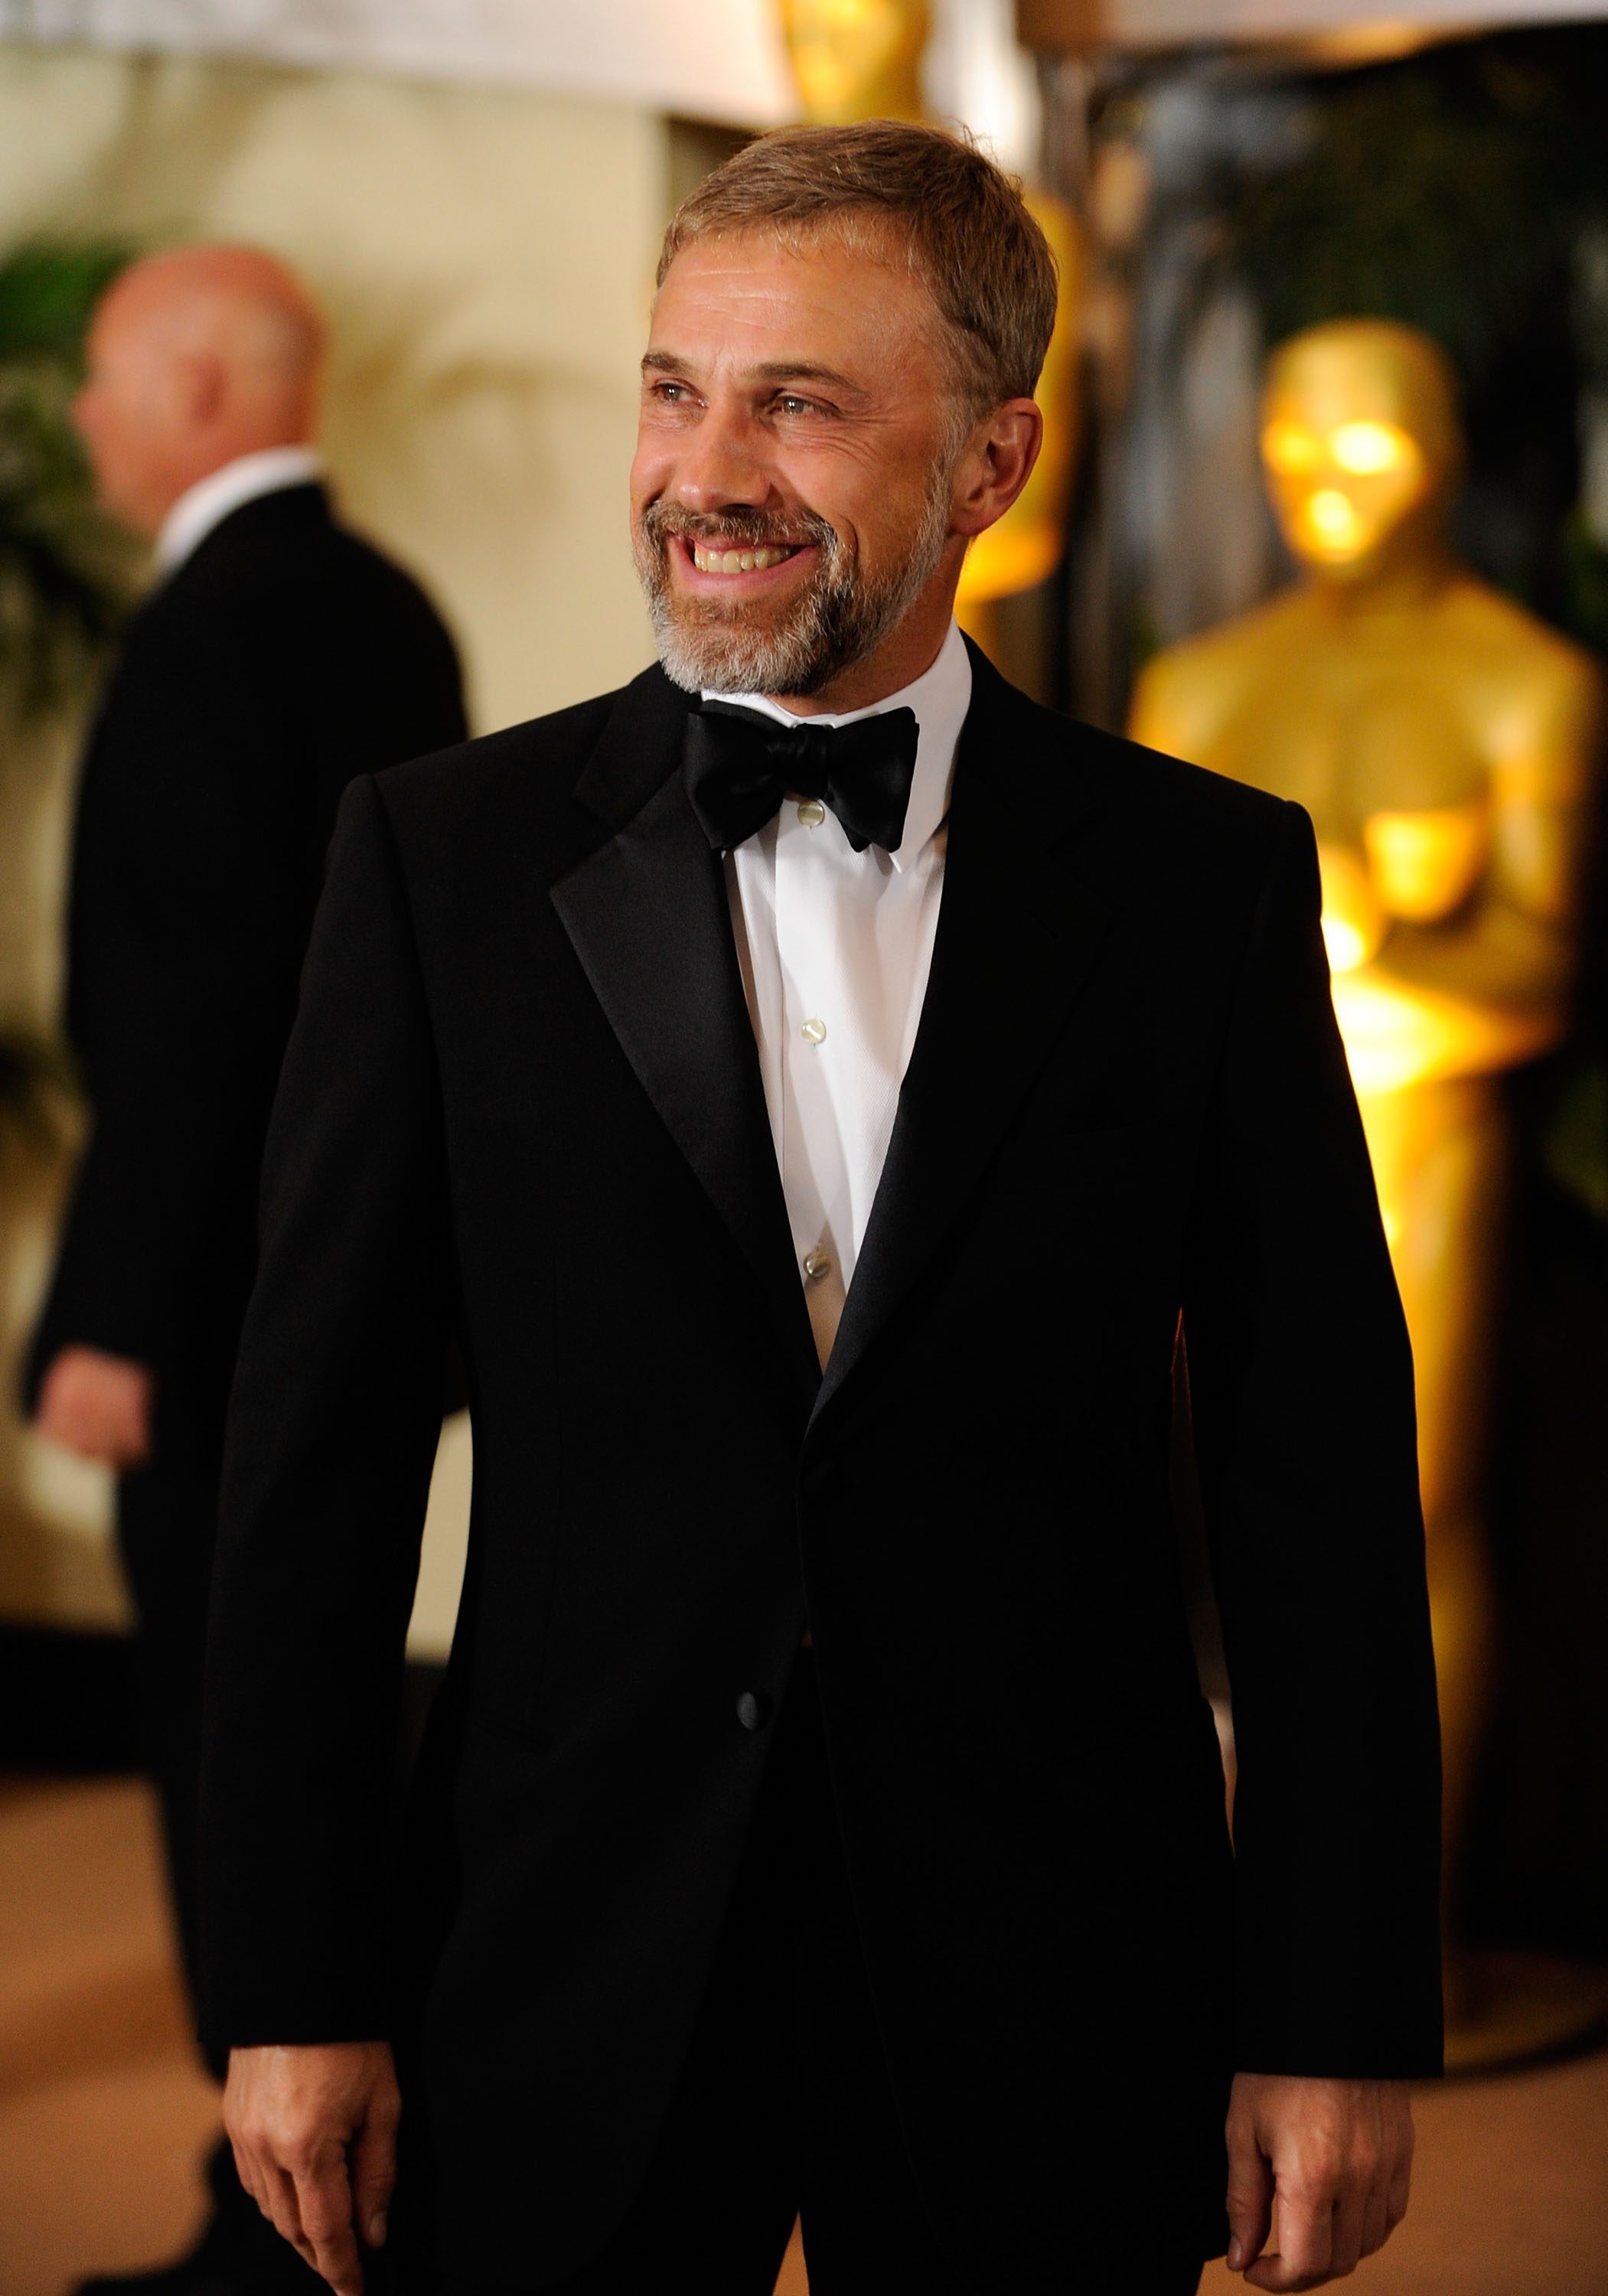 Actor Christoph Waltz arrives at the Academy of Motion Picture Arts and Sciences' Inaugural Governors Awards held at the Grand Ballroom at Hollywood & Highland Center on November 14, 2009 in Los Angeles, California.